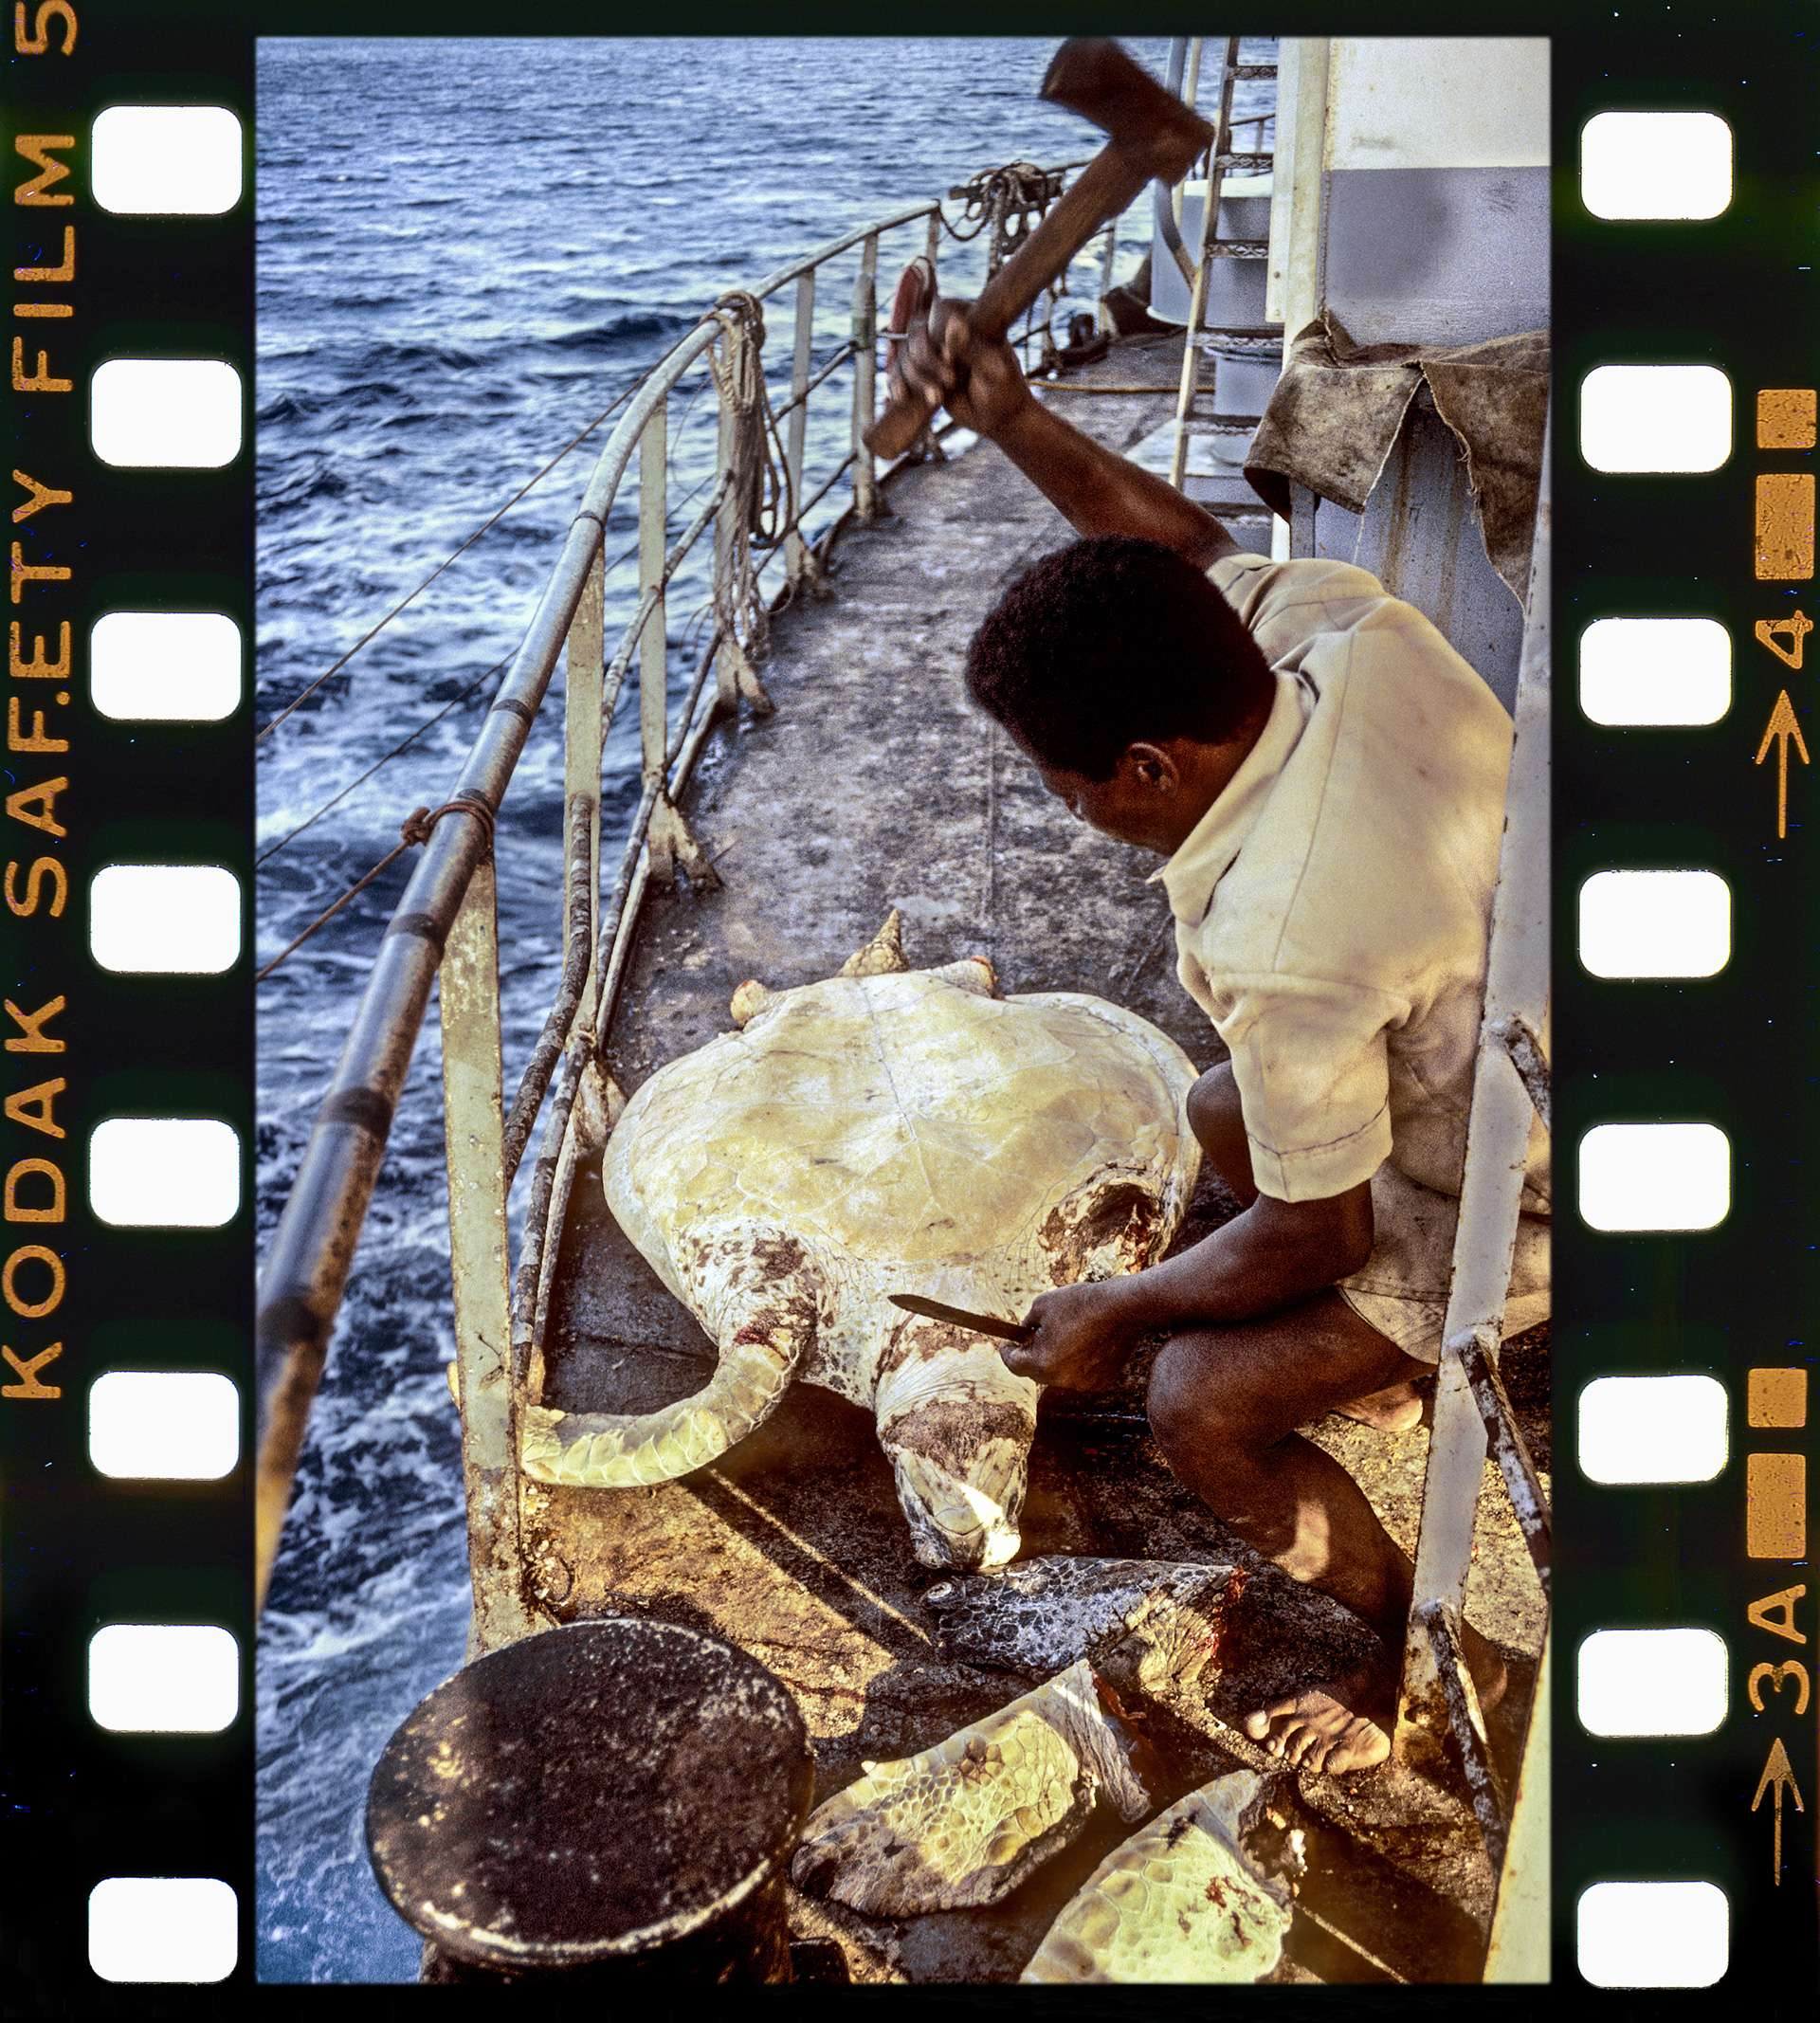 Photography by Gilles Martin of the sea turtles trafficking